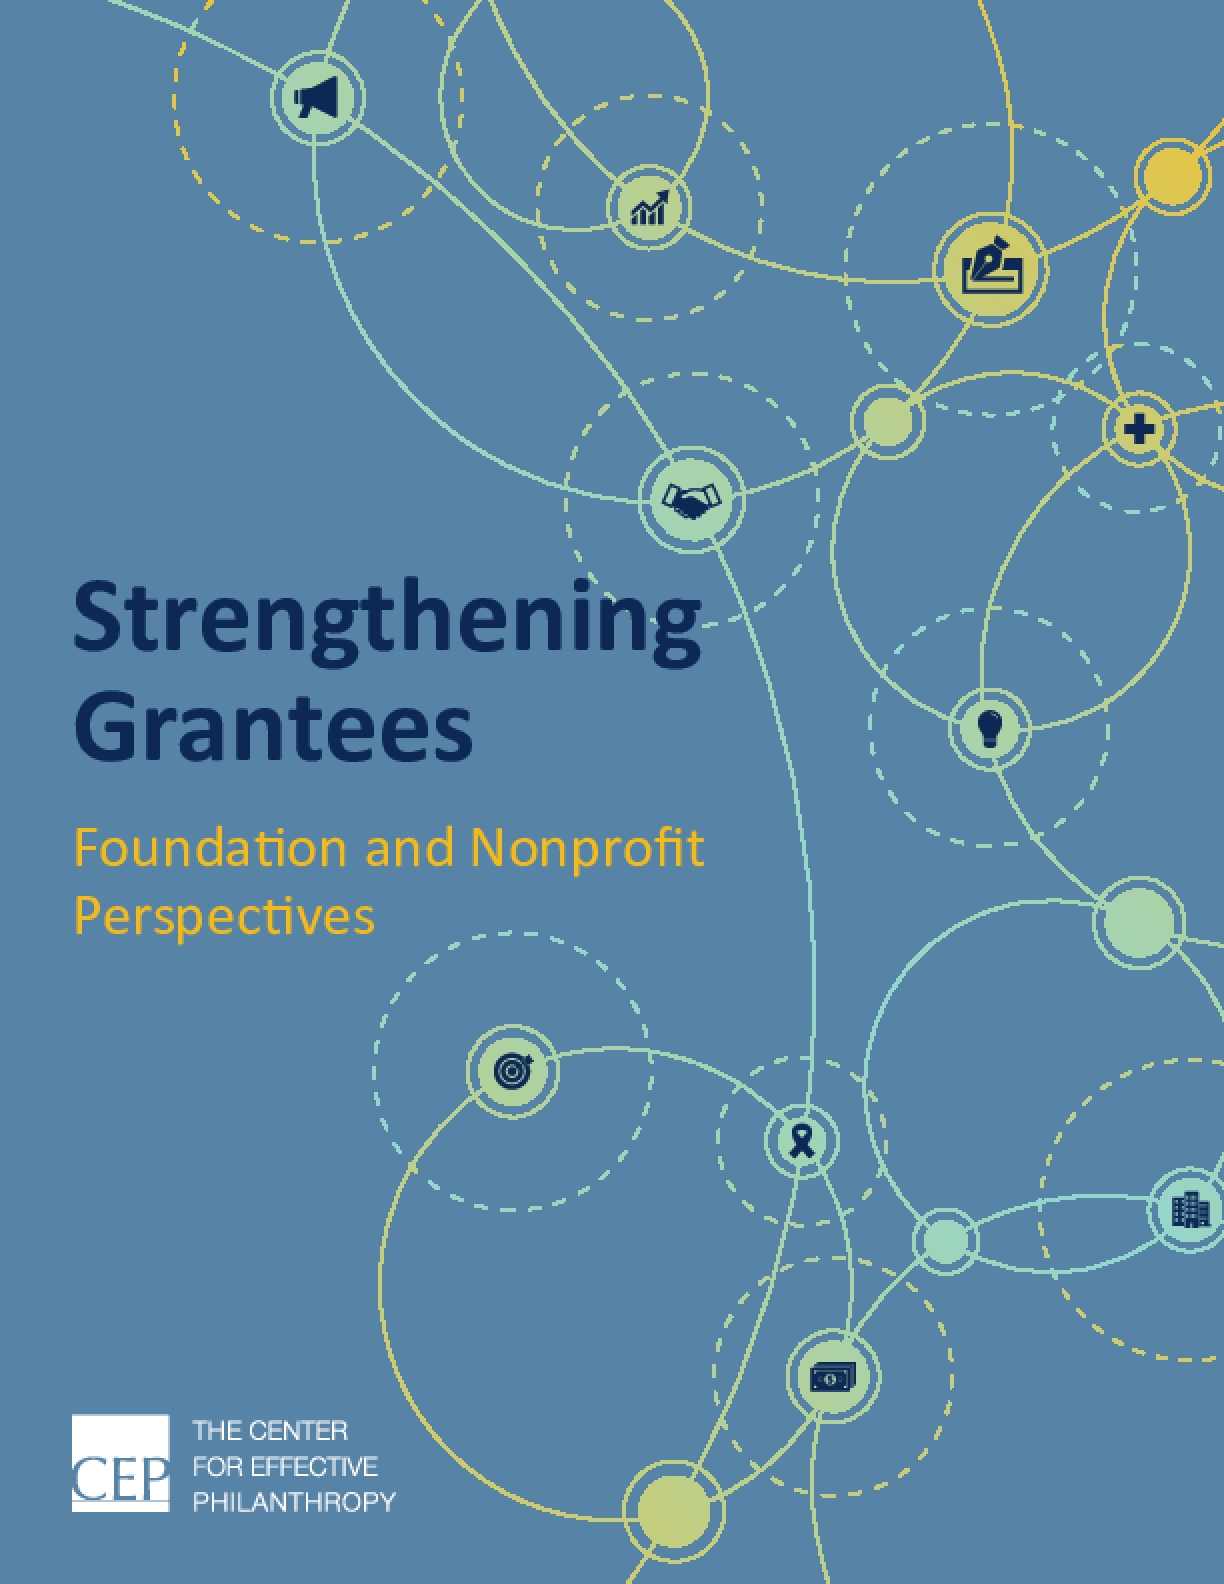 Strengthening Grantees: Foundation and Nonprofit Perspectives